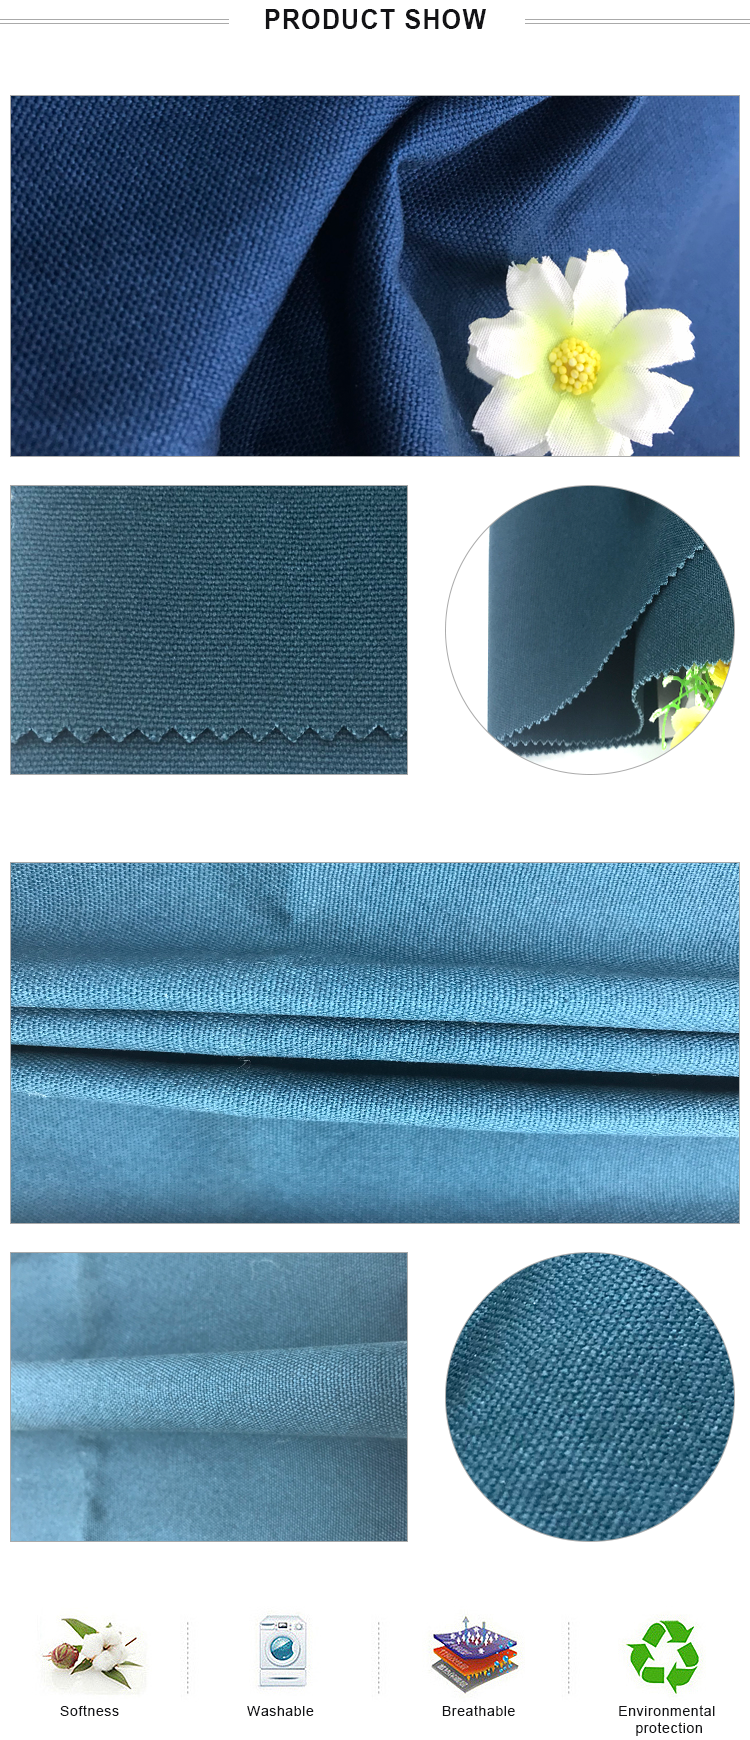 professional textile supplier woven 12oz cotton canvas fabric with harmless and breathable material